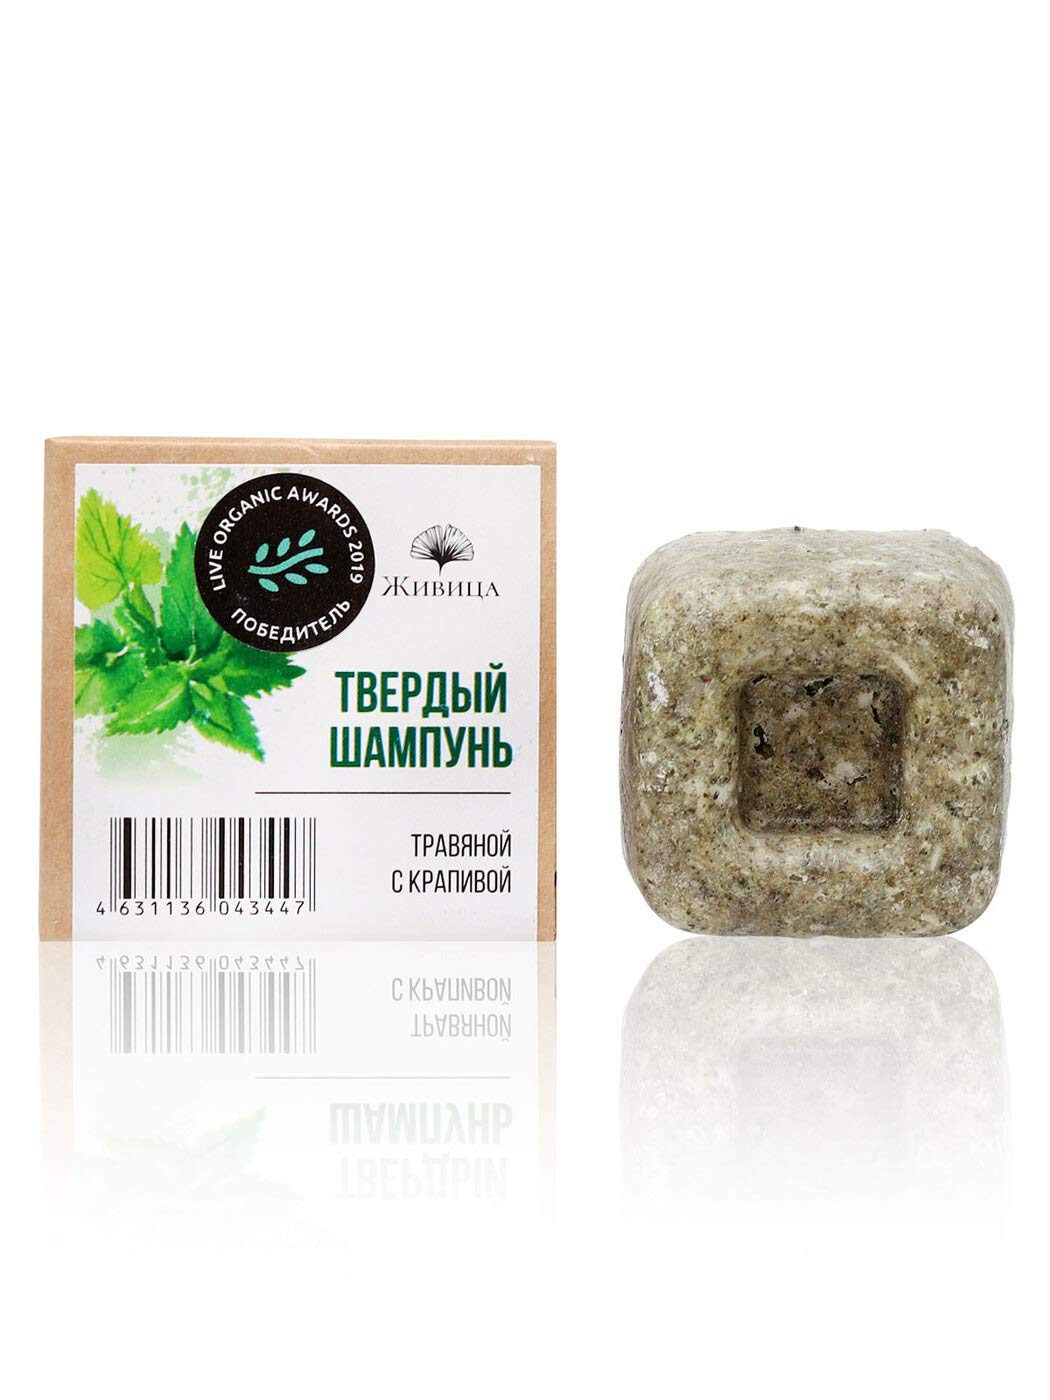 Zhivitsa Solid Shampoo Bar for Normal Max 82% OFF Oily Hair wit - online shopping Herbal and